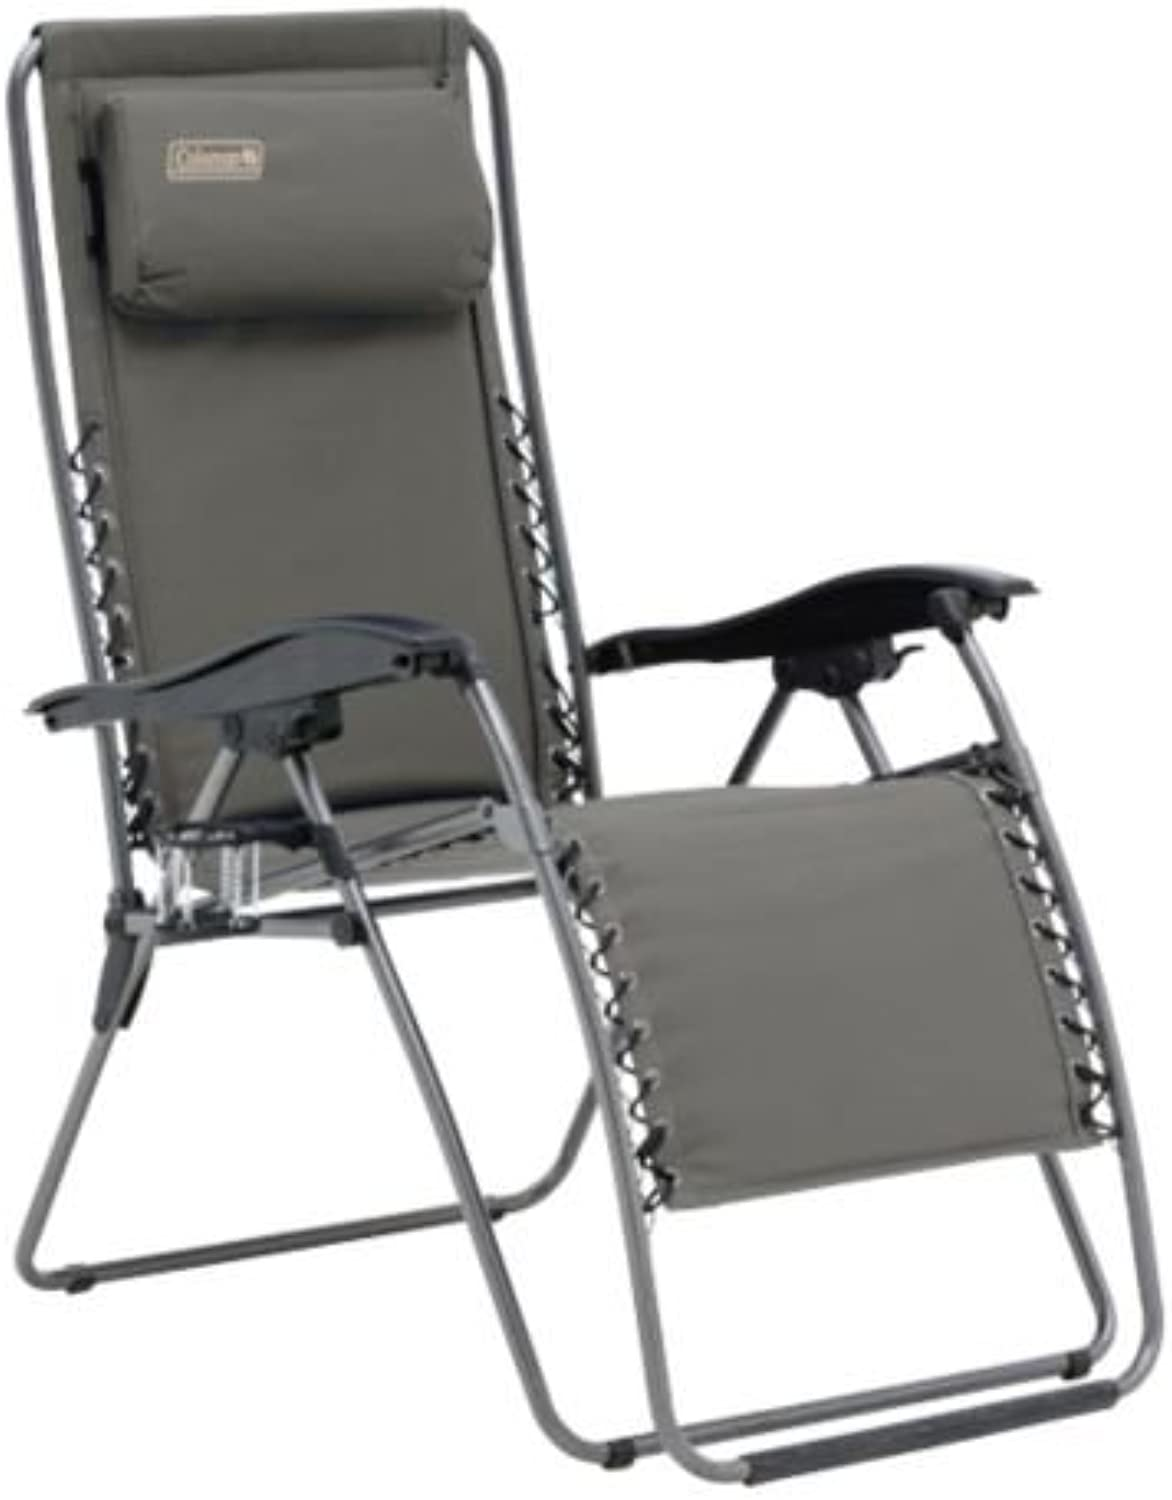 Coleman Flat Fold Layback Lounger Chair, Charcoal Grey